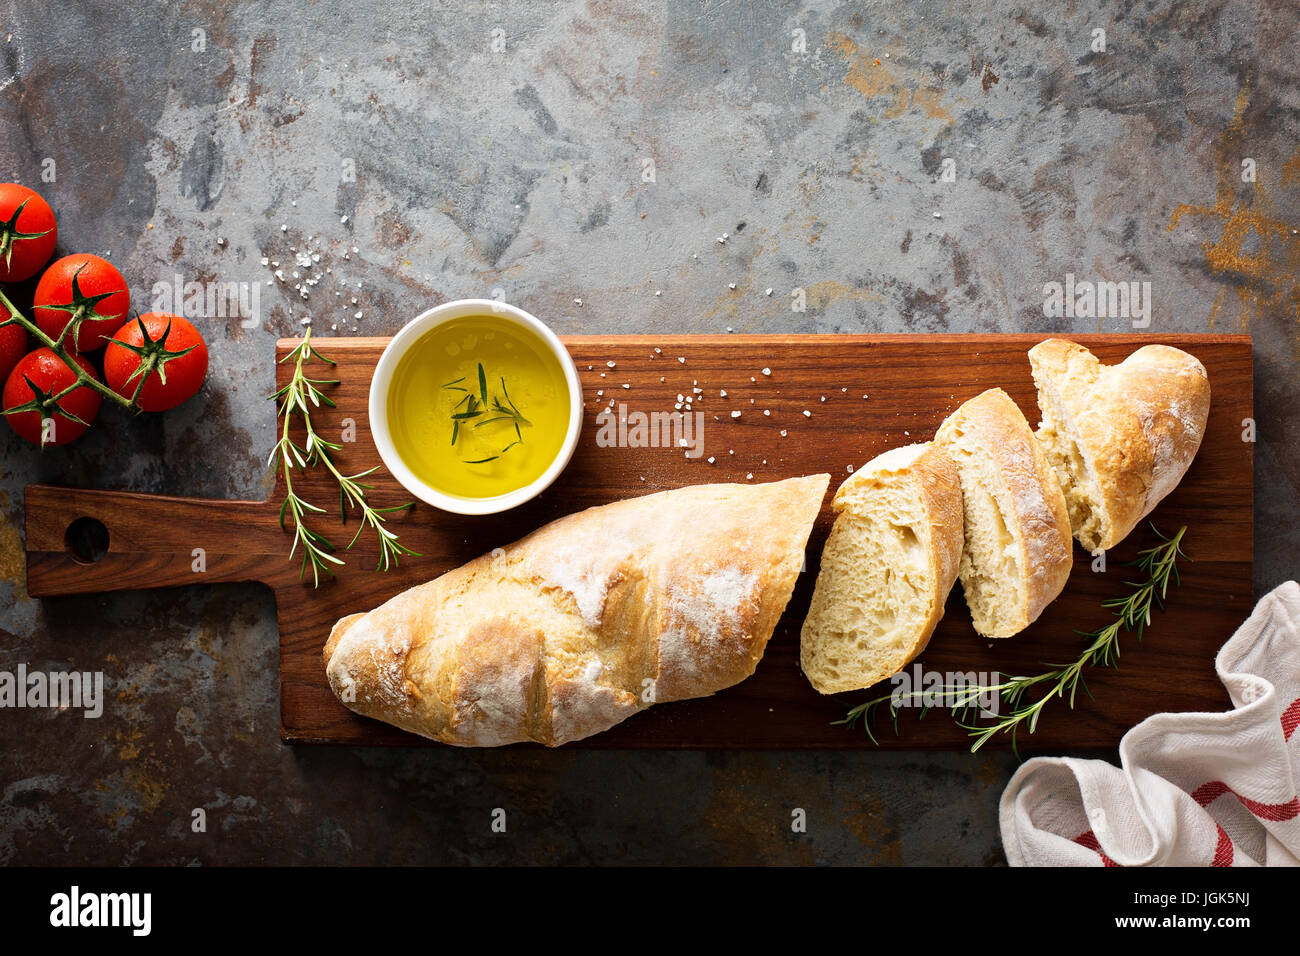 Homemade baguette with olive oil and salt - Stock Image